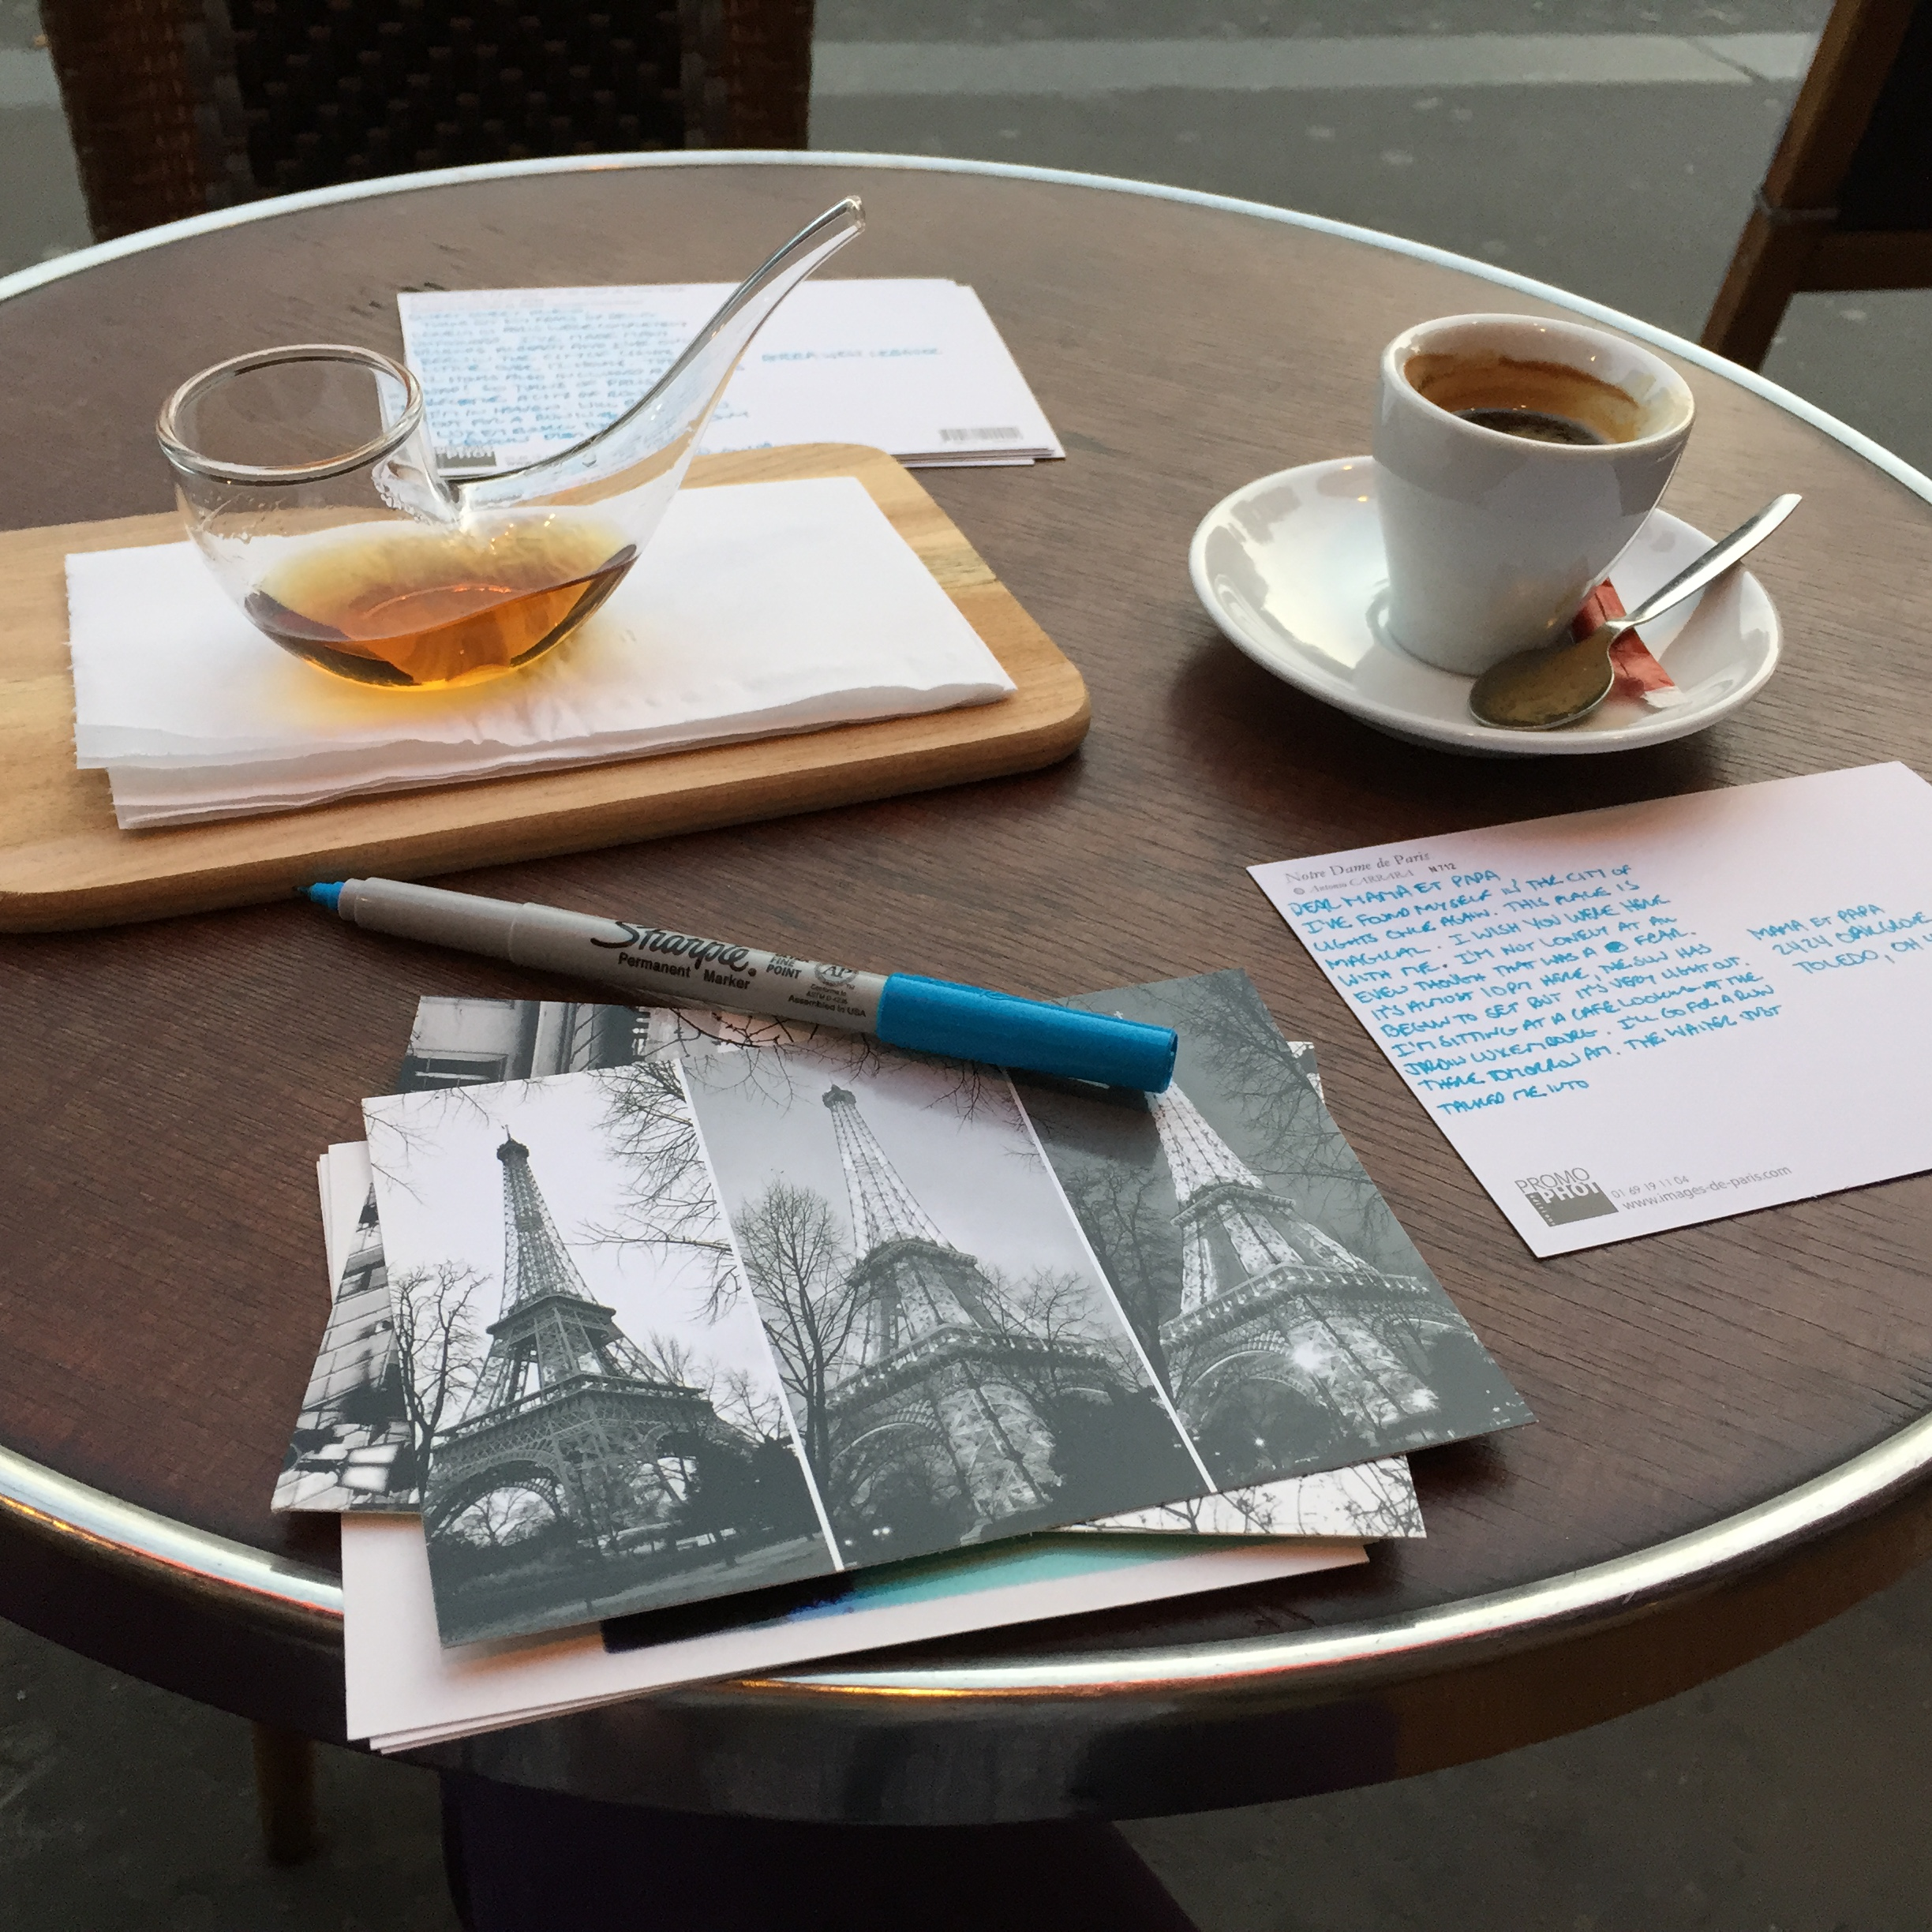 Sitting across from Le Jardin Luxembourg Sunday evening penning post cards to my peeps.